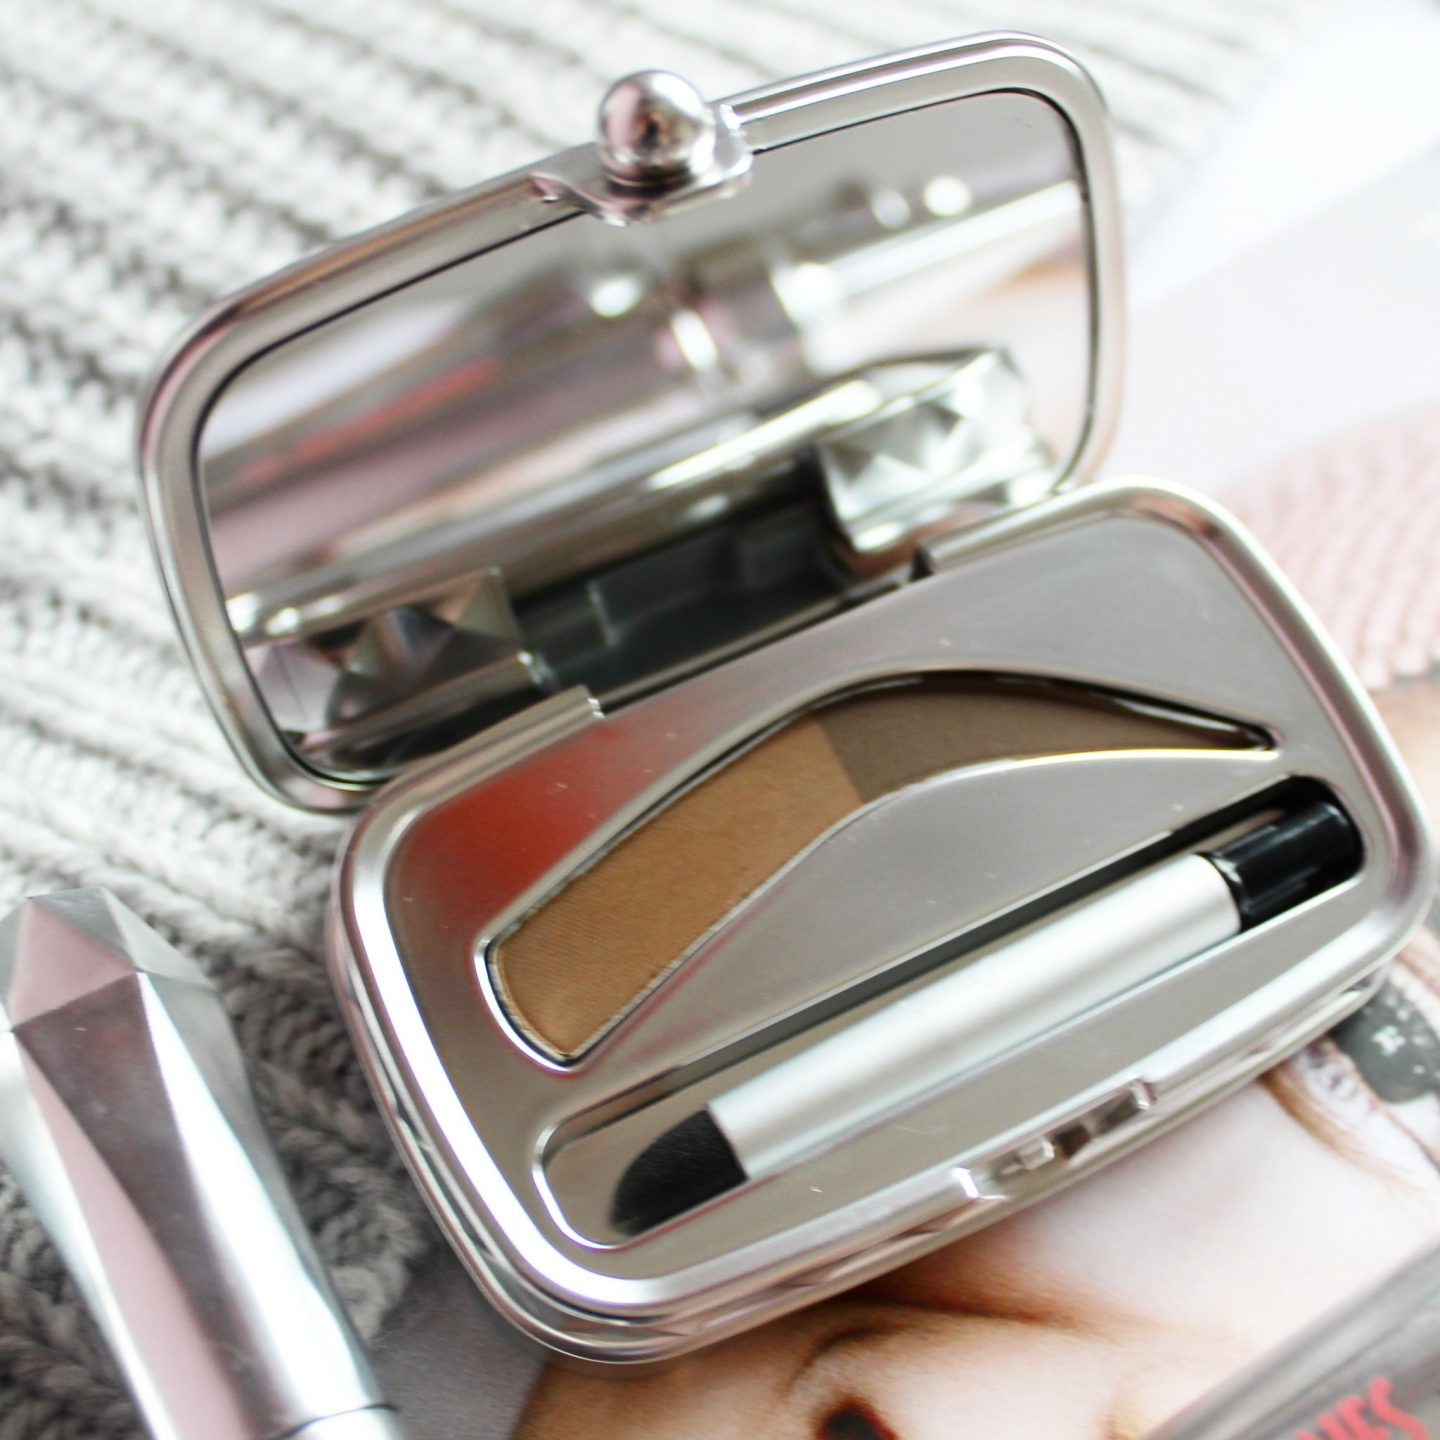 FoolProof Brow Powder from Benefit